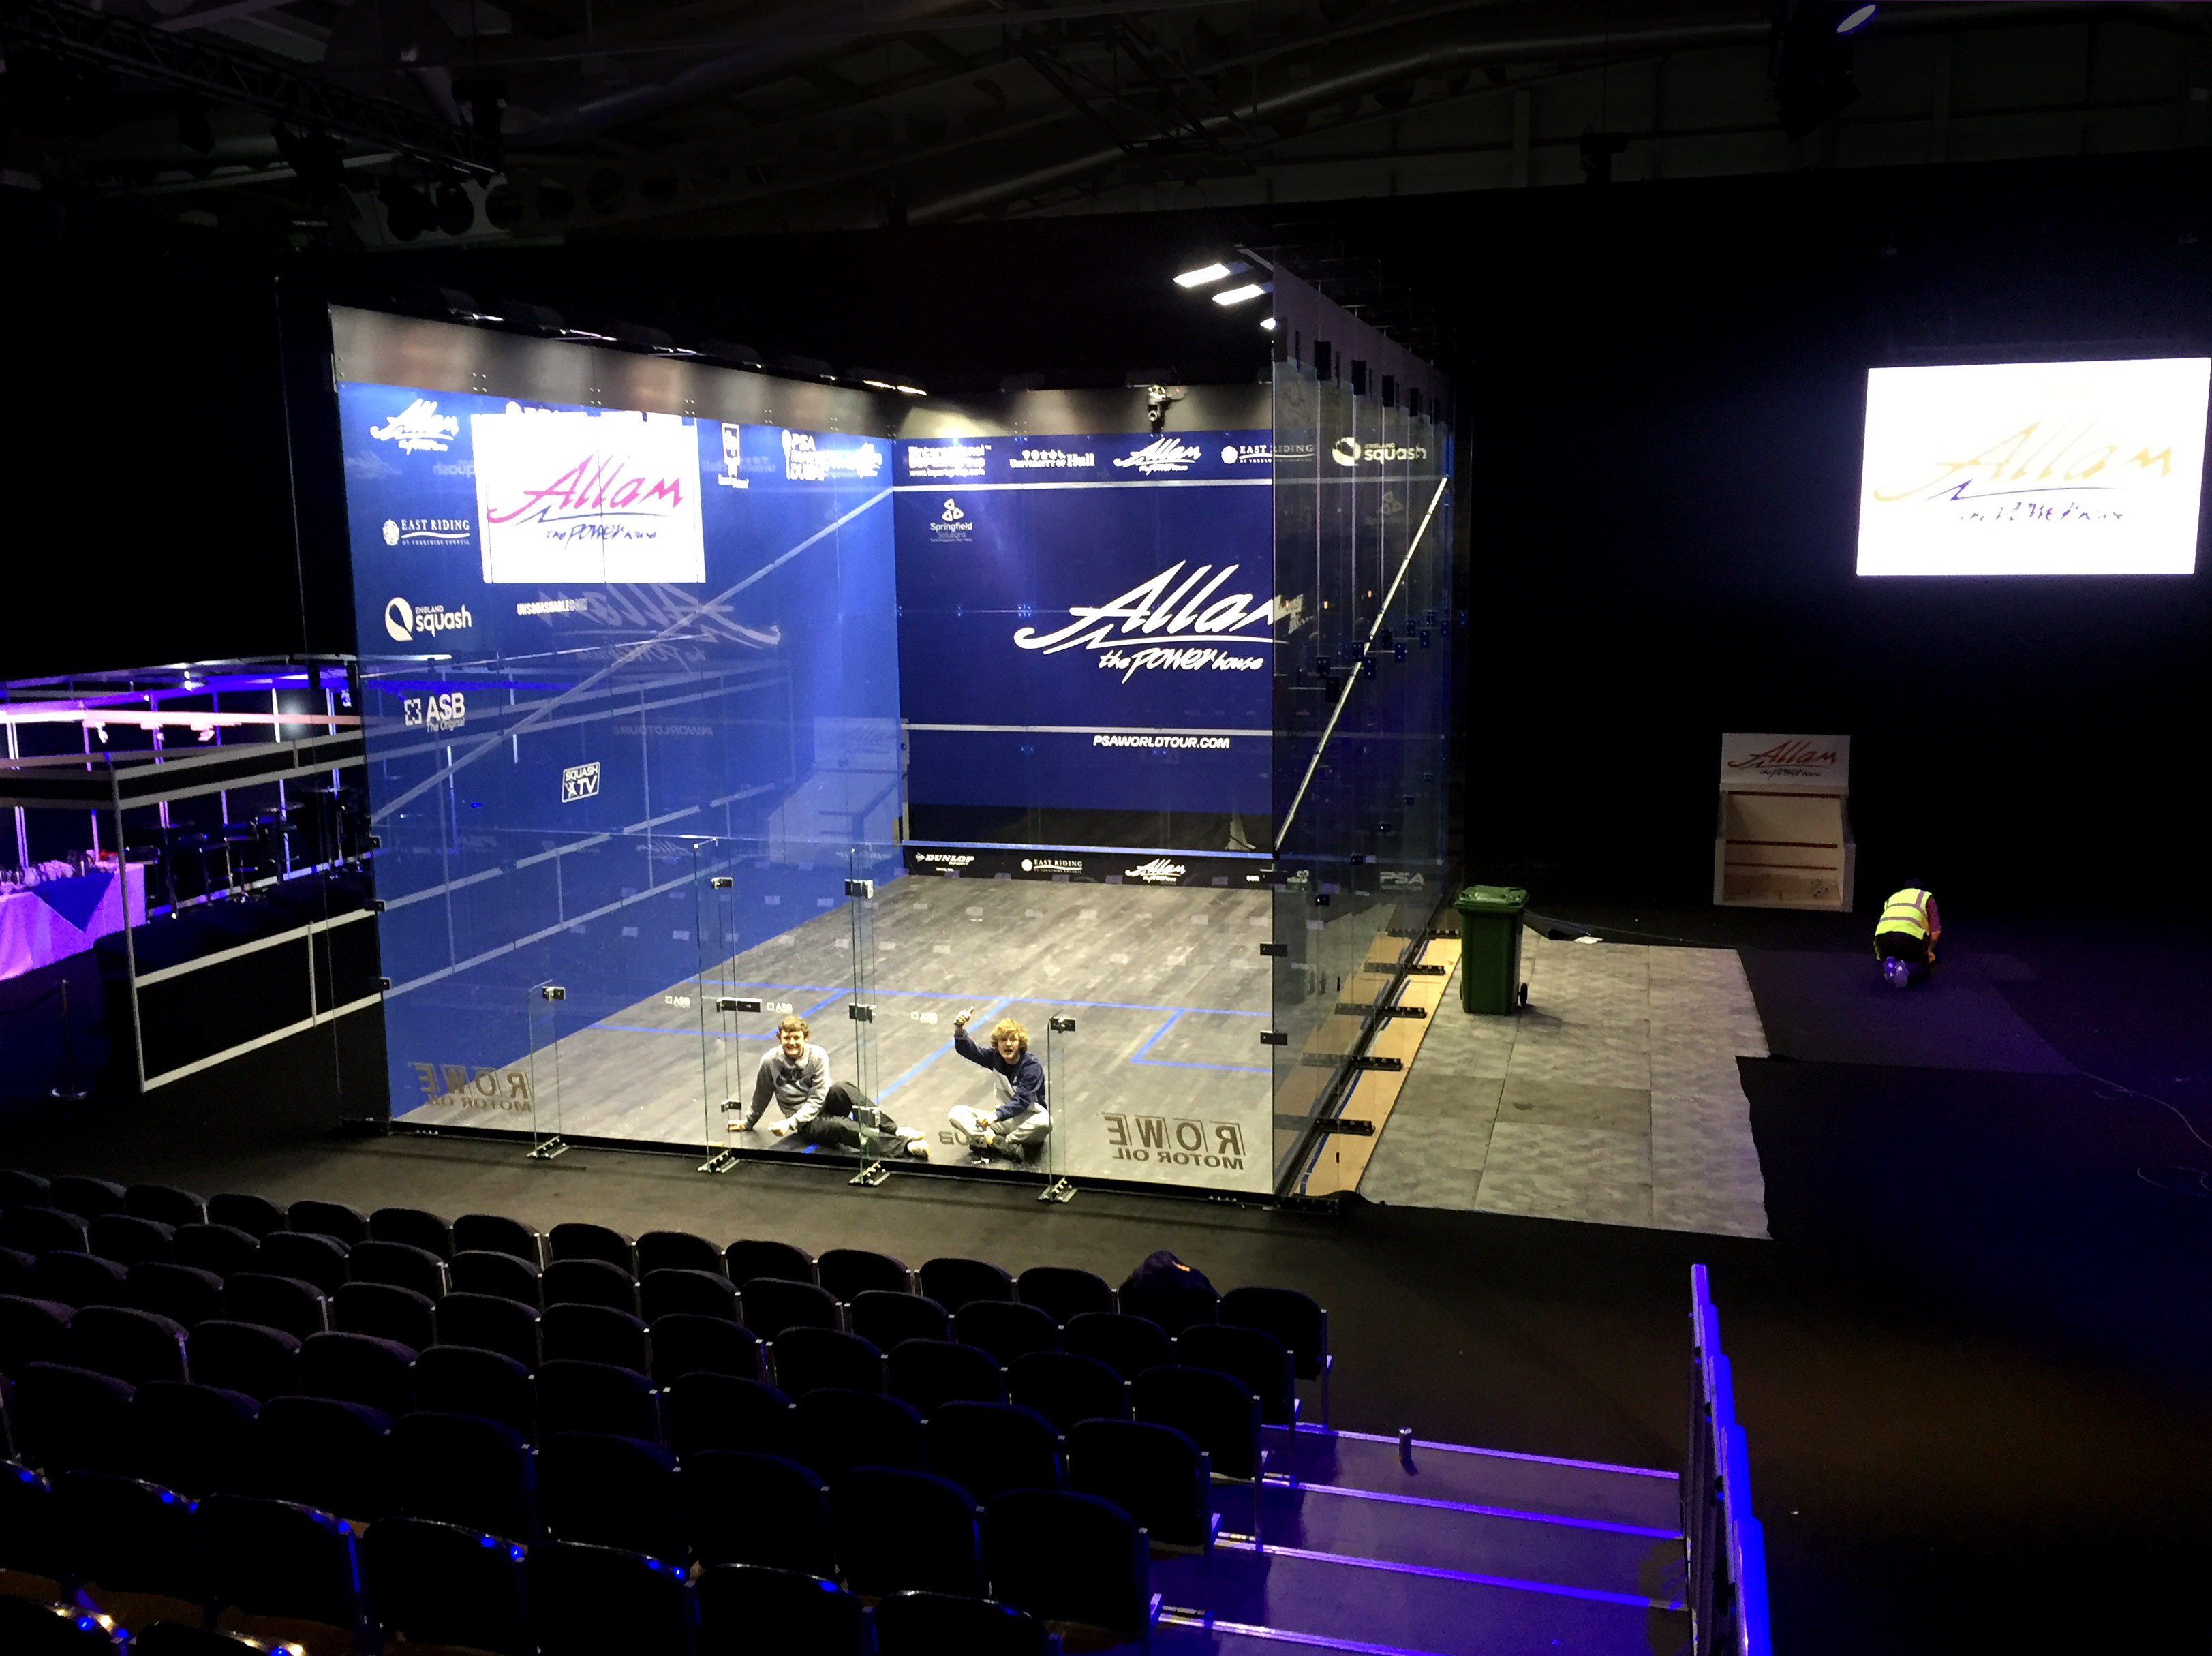 The Allam British Open Squash Championships at the Airco Arena, Hull